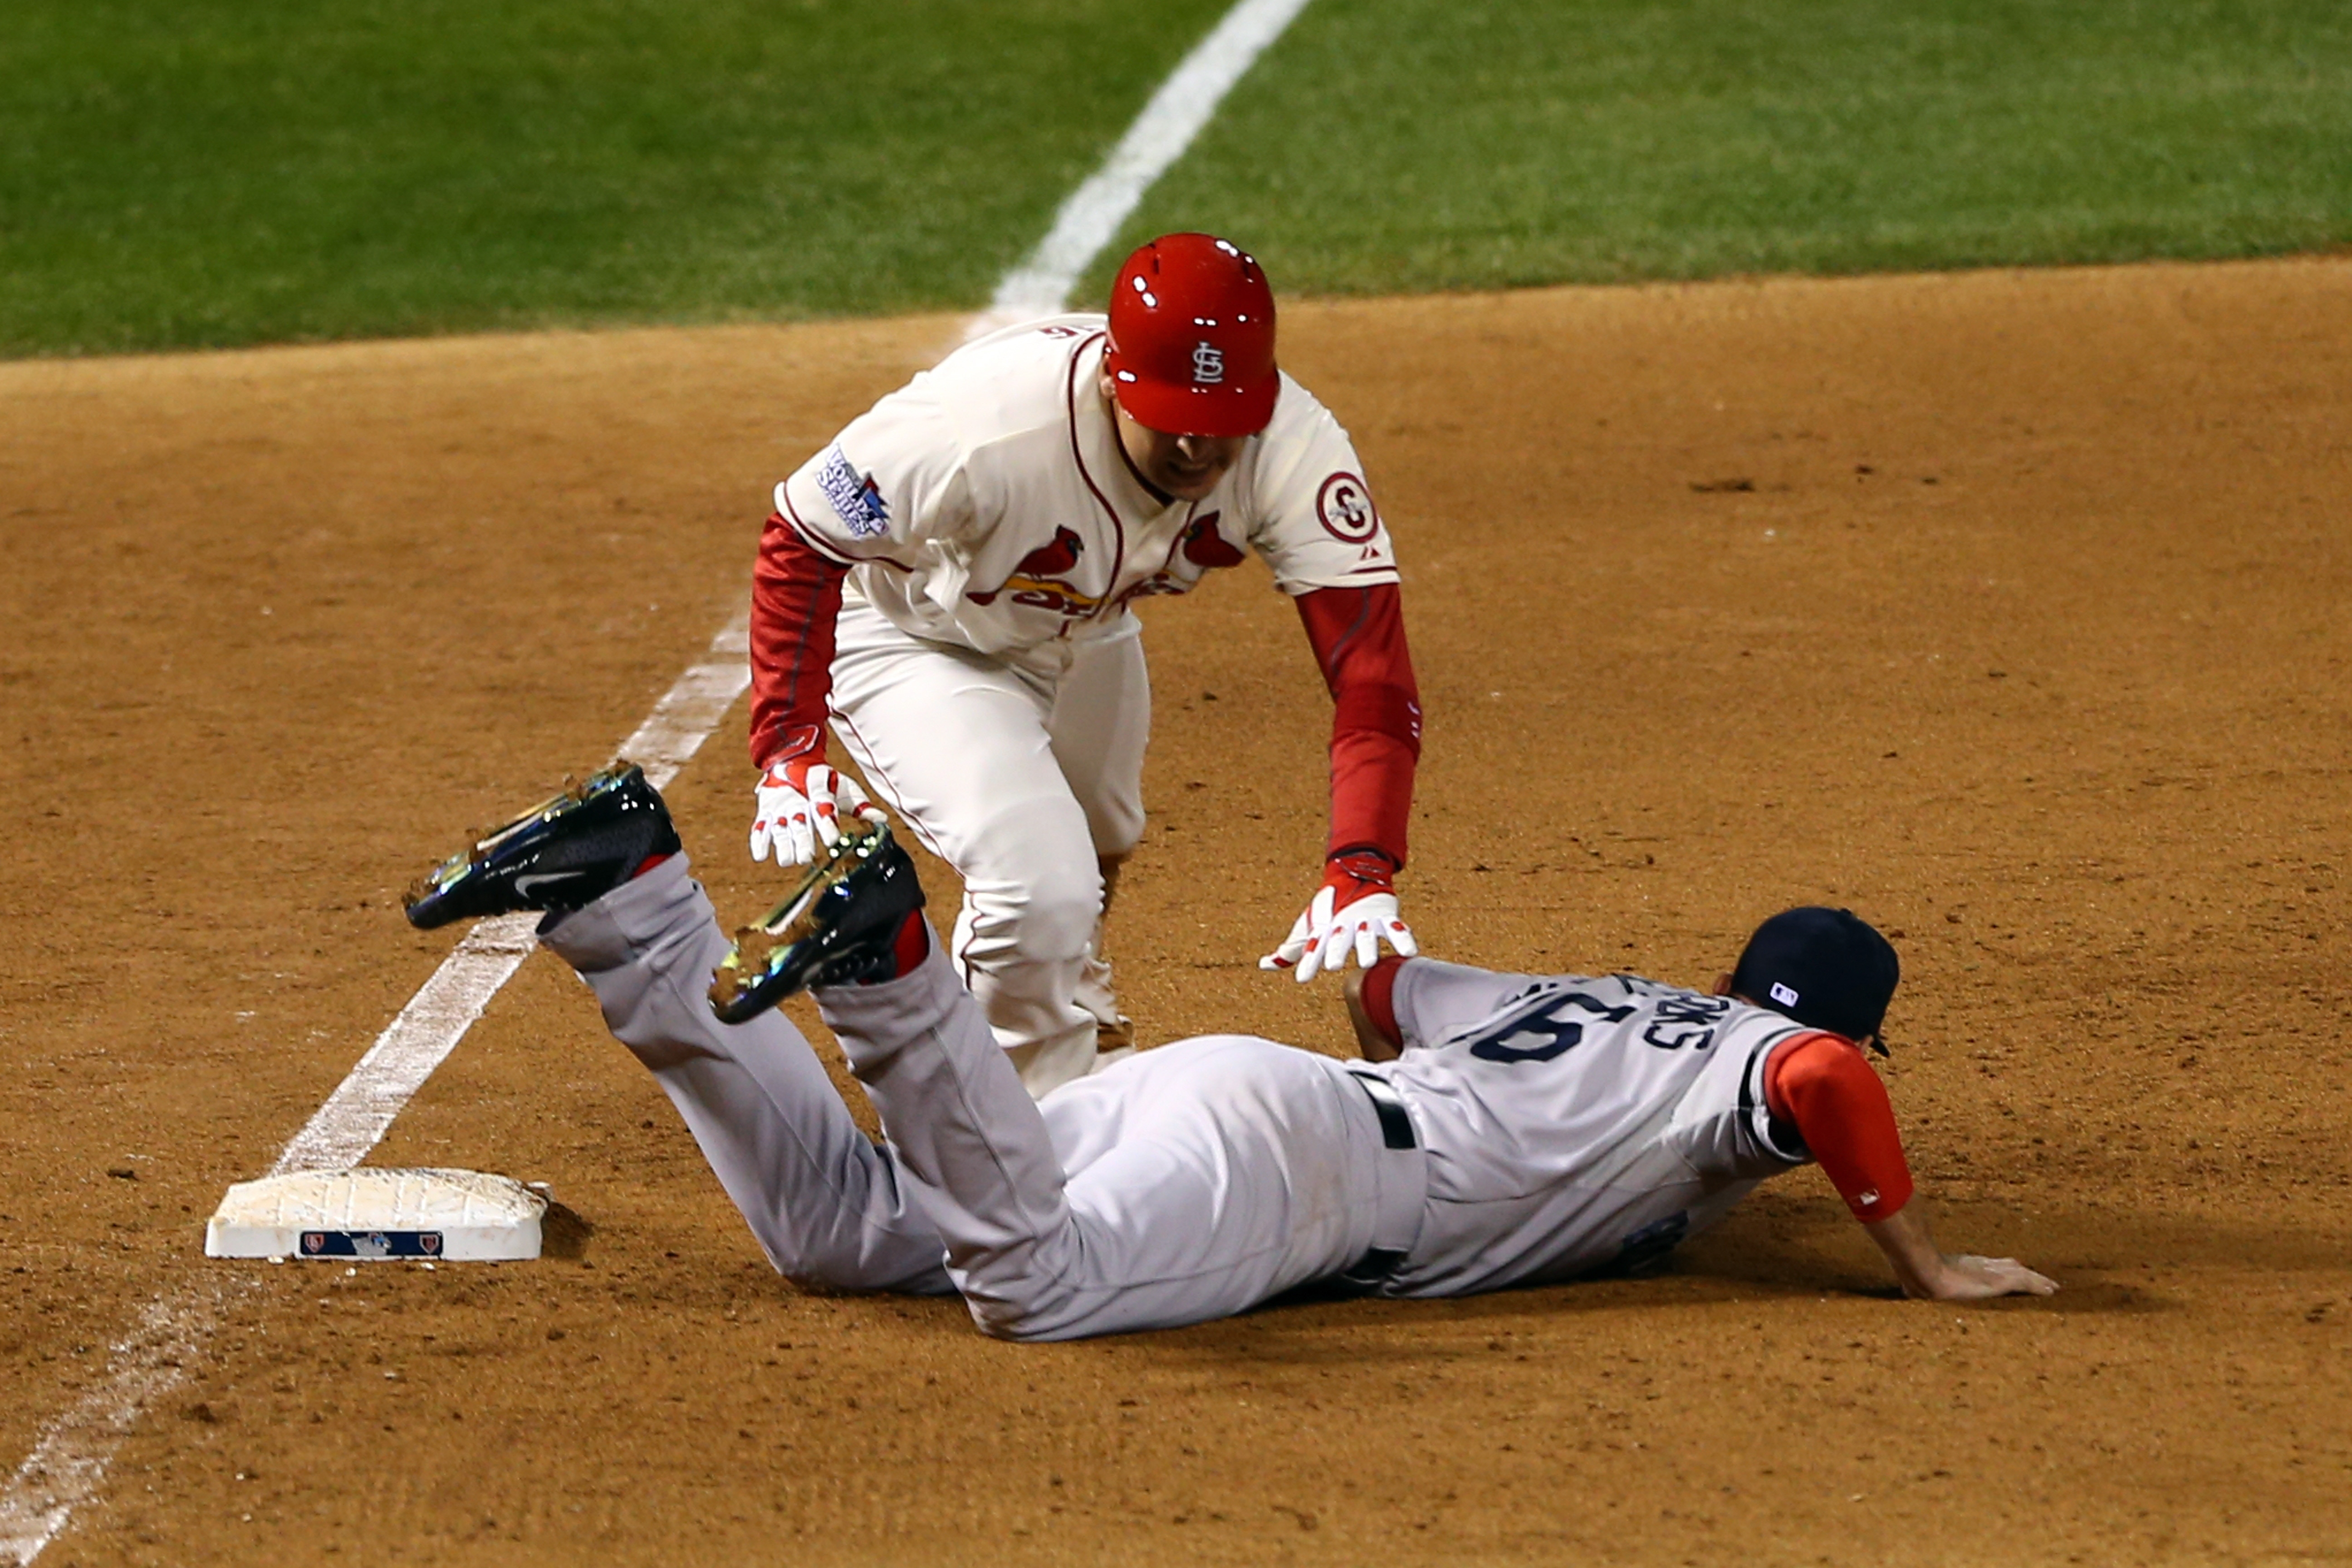 Allen Craig of the Cardinals gets tripped up near third base by Boston's Will Middlebrooks, who was called for obstruction.